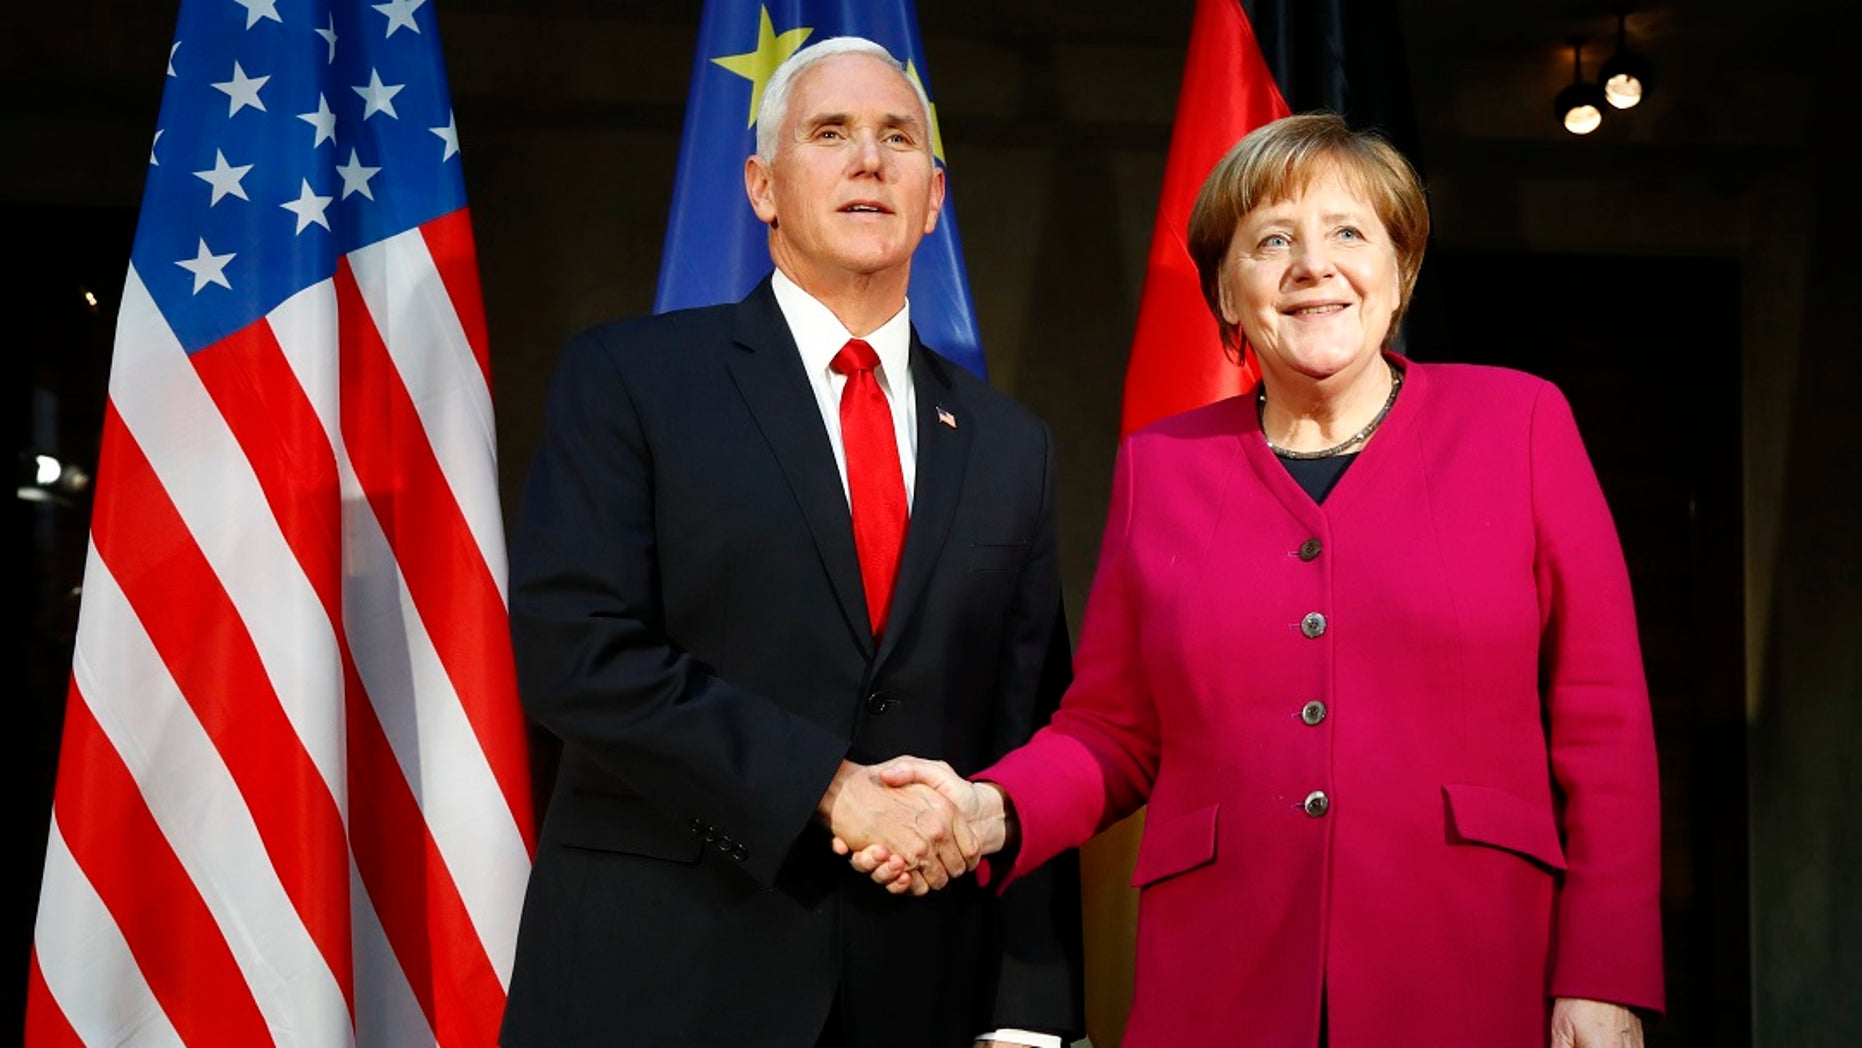 Vice President Mike Pence and German Chancellor Angela Merkel meet at the Munich Security Conference in Munich, Germany, Feb. 16, 2019. (Associated Press)